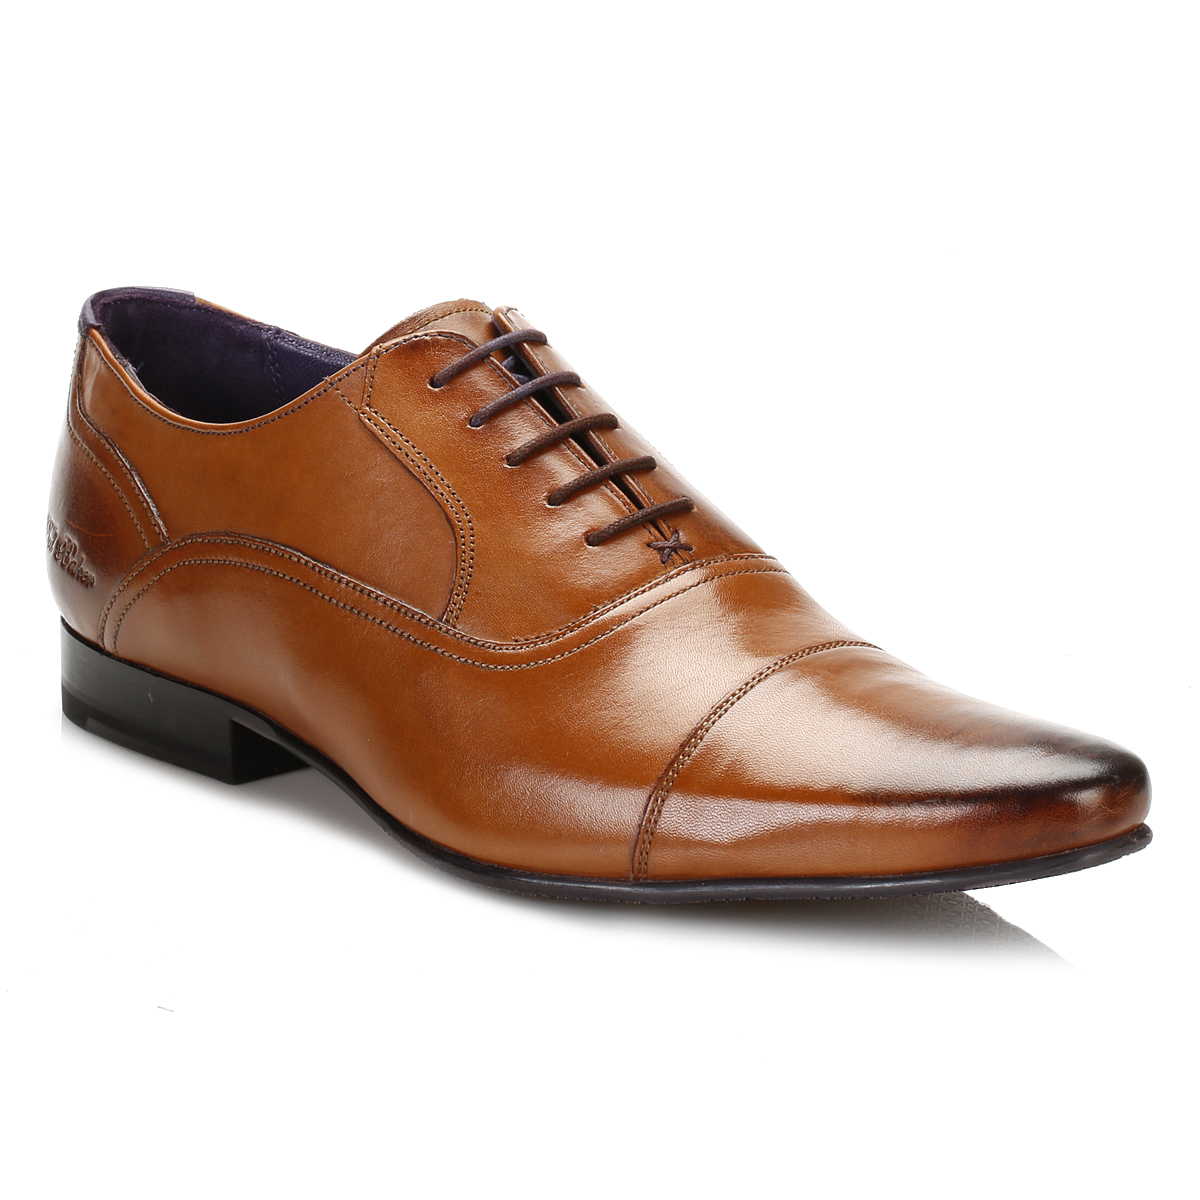 Mens Tan Dress Shoes Uk